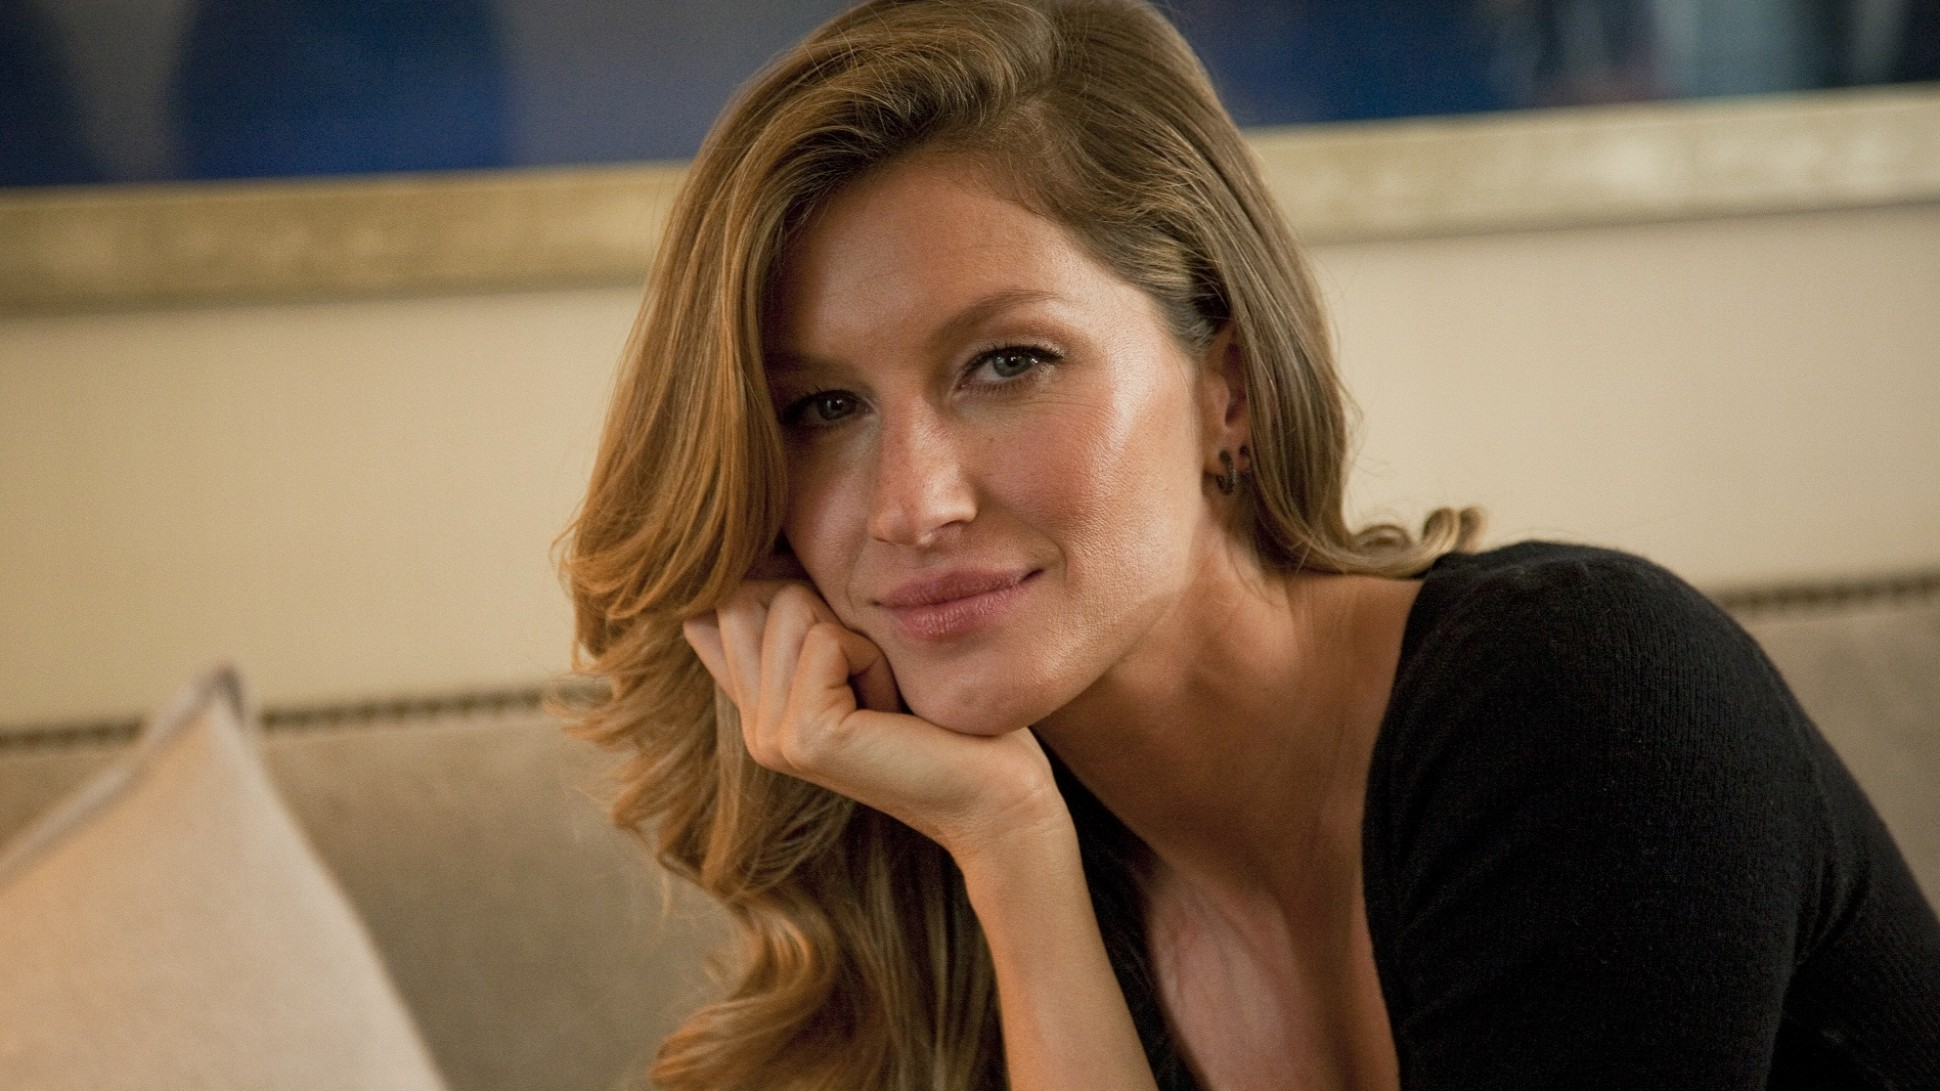 Gisele Bundchen Wallpapers High Resolution and Quality